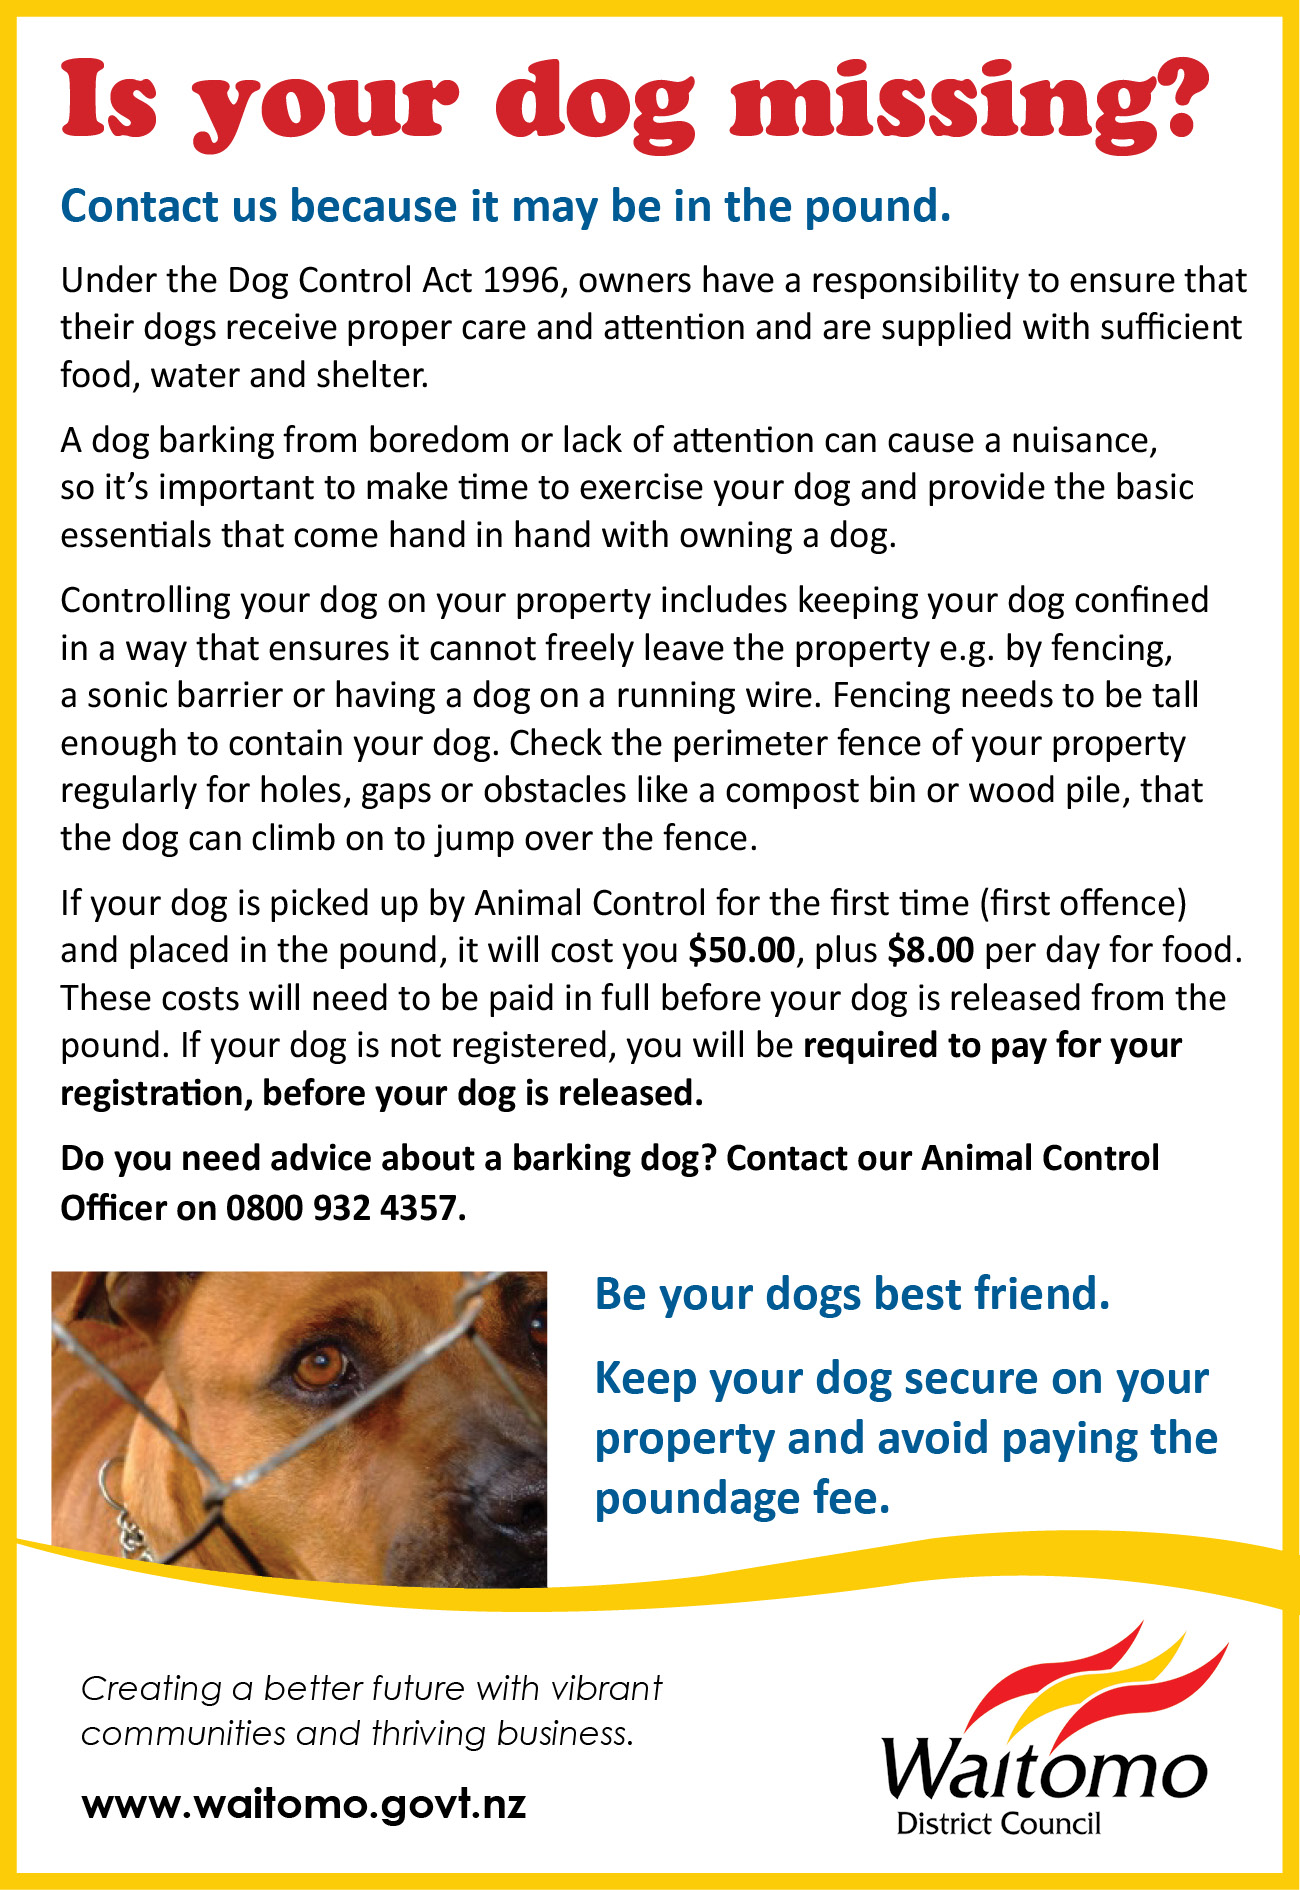 Is your dog missing? Contact Waitomo District Animal Control.